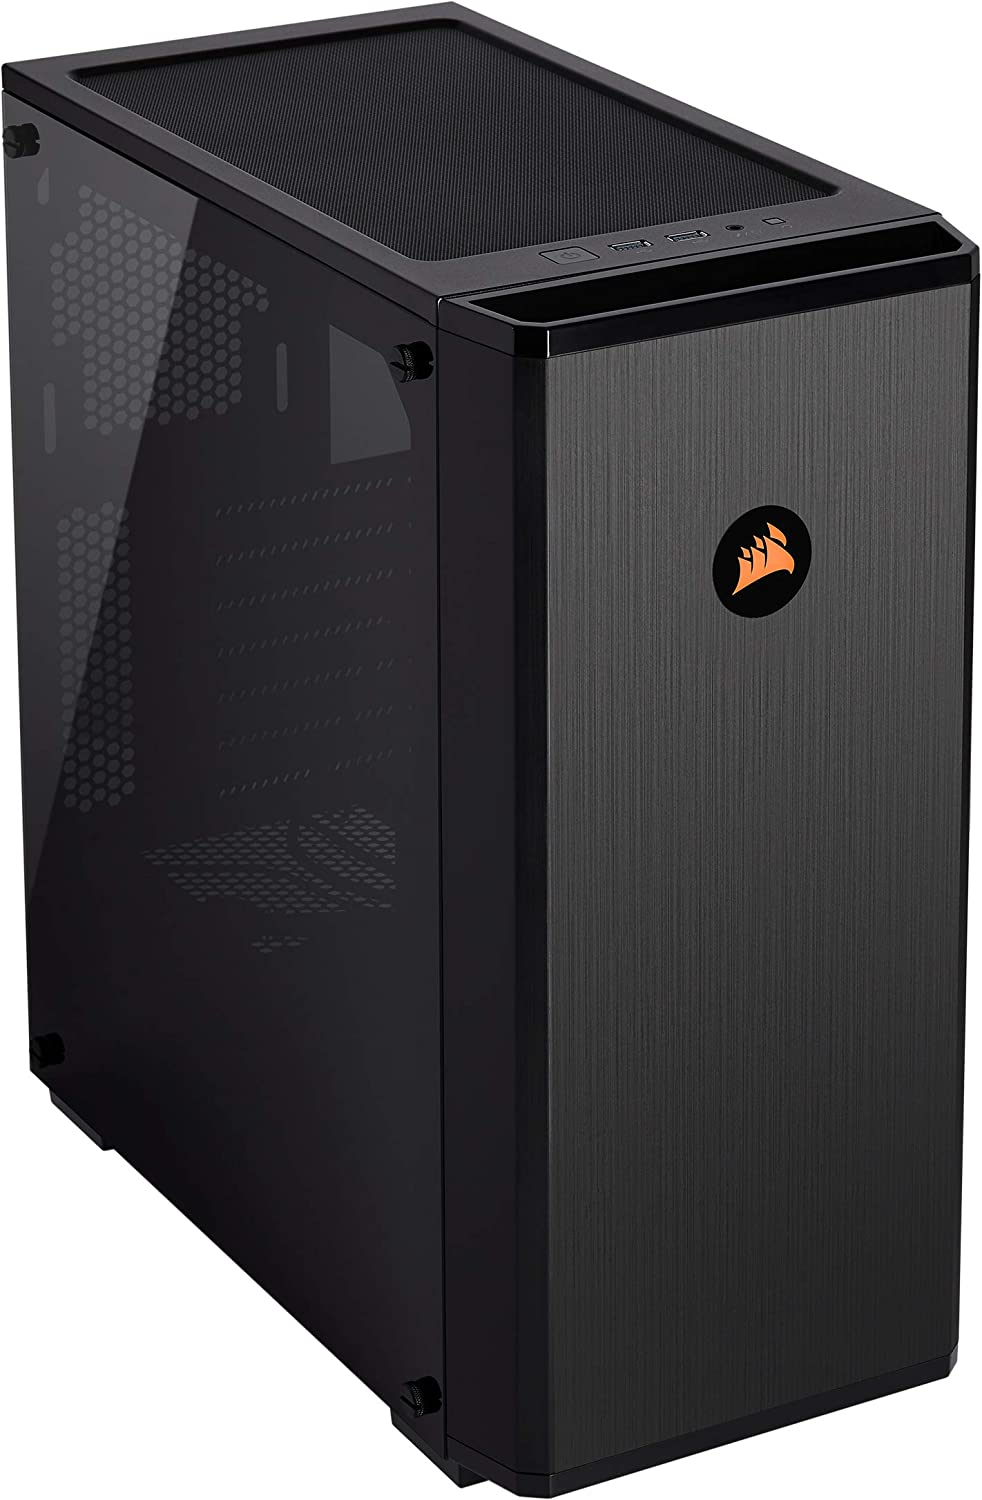 Corsair Carbide Series 175R RGB Tempered Glass Mid-Tower ATX Gaming Case, Black - CC-9011171-WW